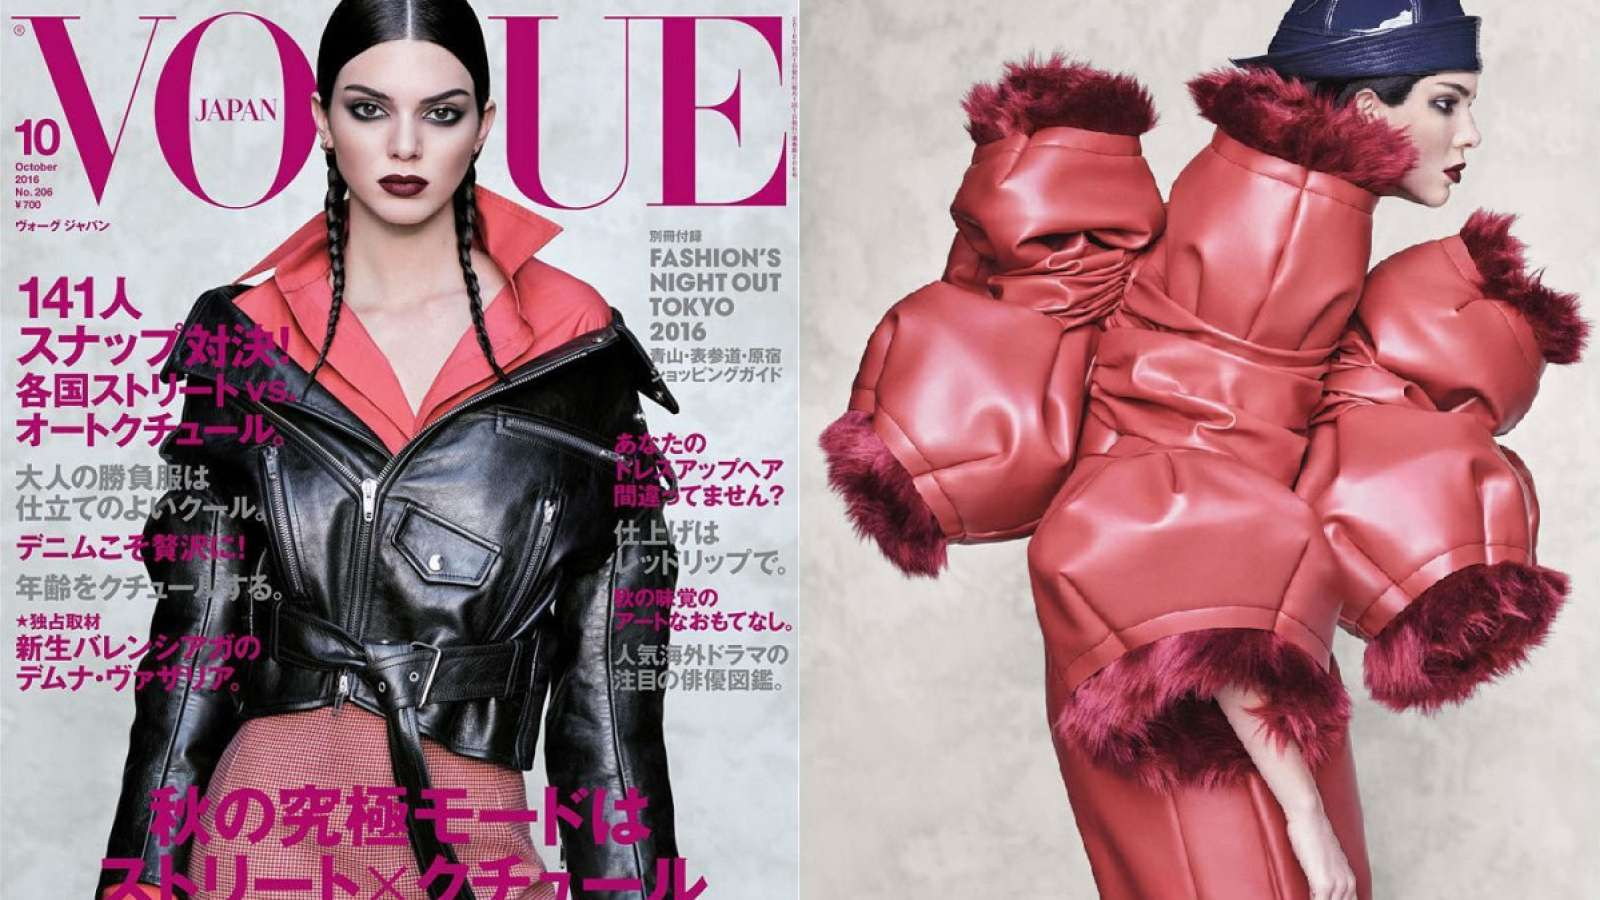 Kendall Jenner Does Vogue Cover Japan The Online Magazine For Style